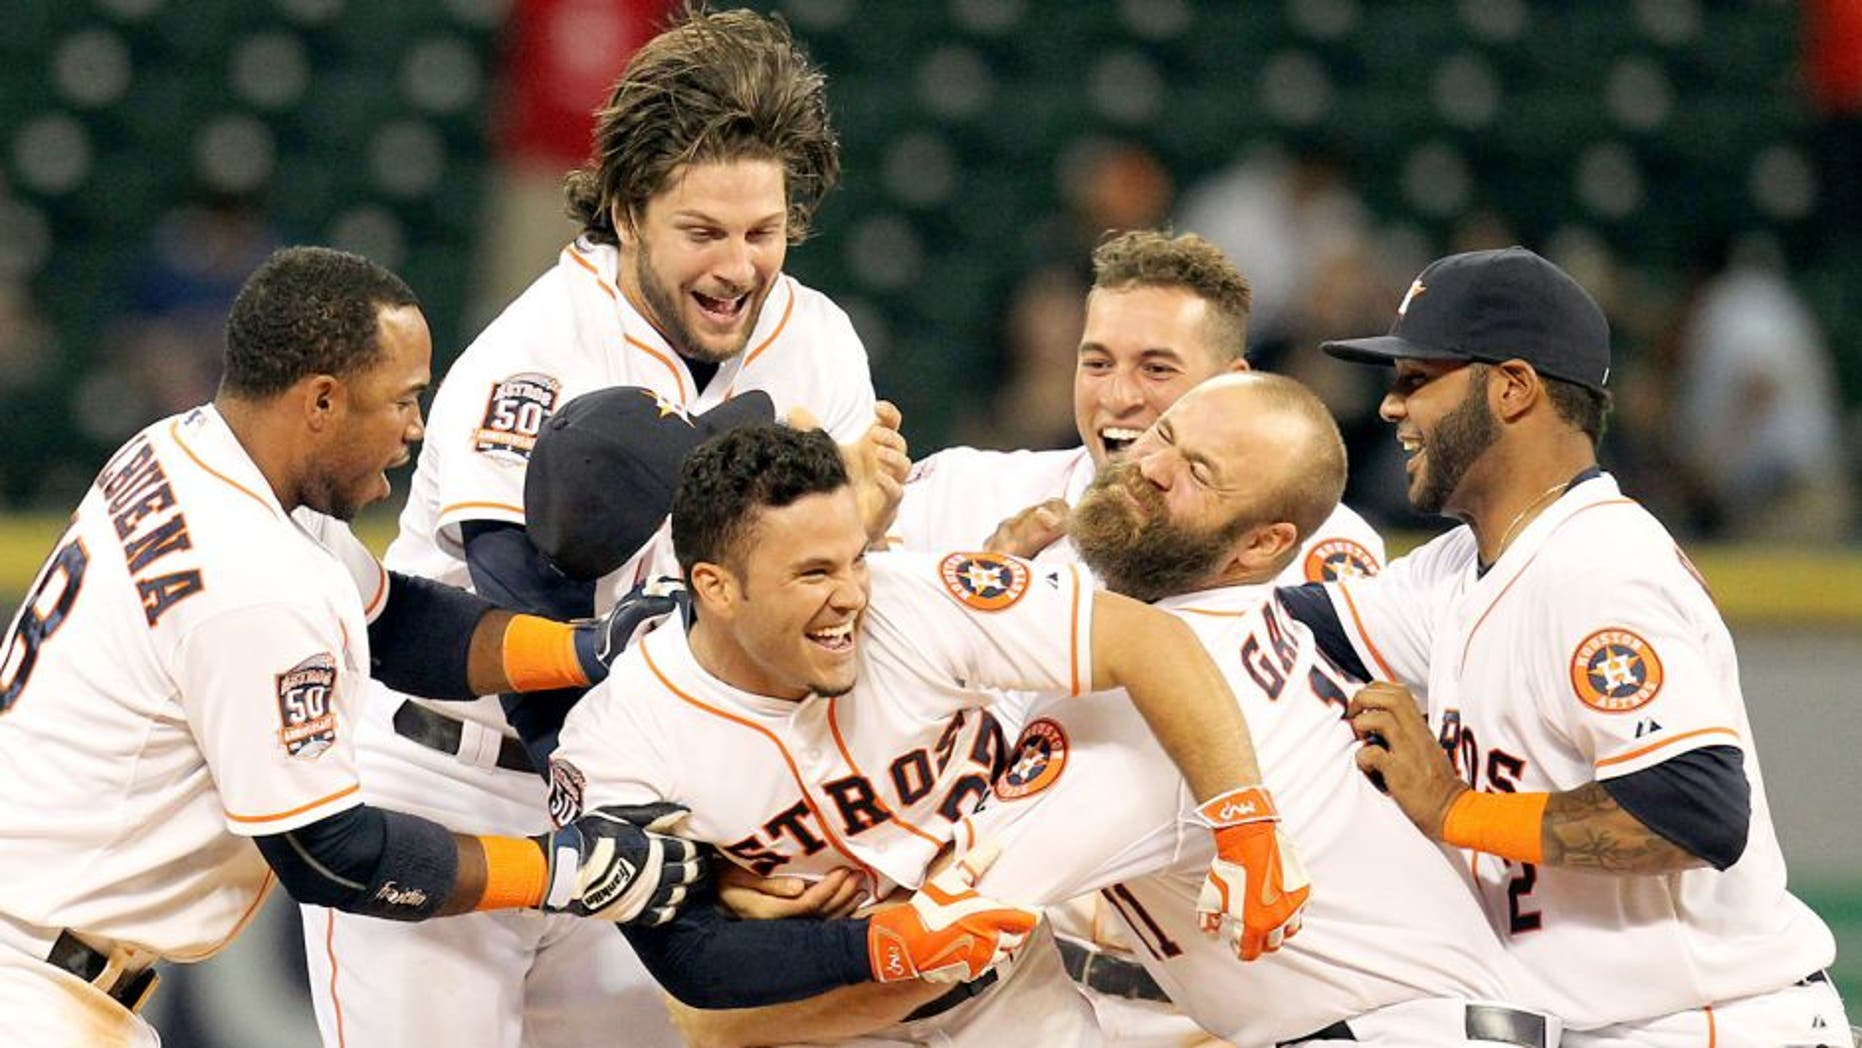 Apr 30, 2015; Houston, TX, USA; Houston Astros players celebrate Houston Astros second baseman Jose Altuve (27) game-winning RBI hit against the Seattle Mariners in the bottom of the 10th inning at Minute Maid Park. Mandatory Credit: Thomas B. Shea-USA TODAY Sports